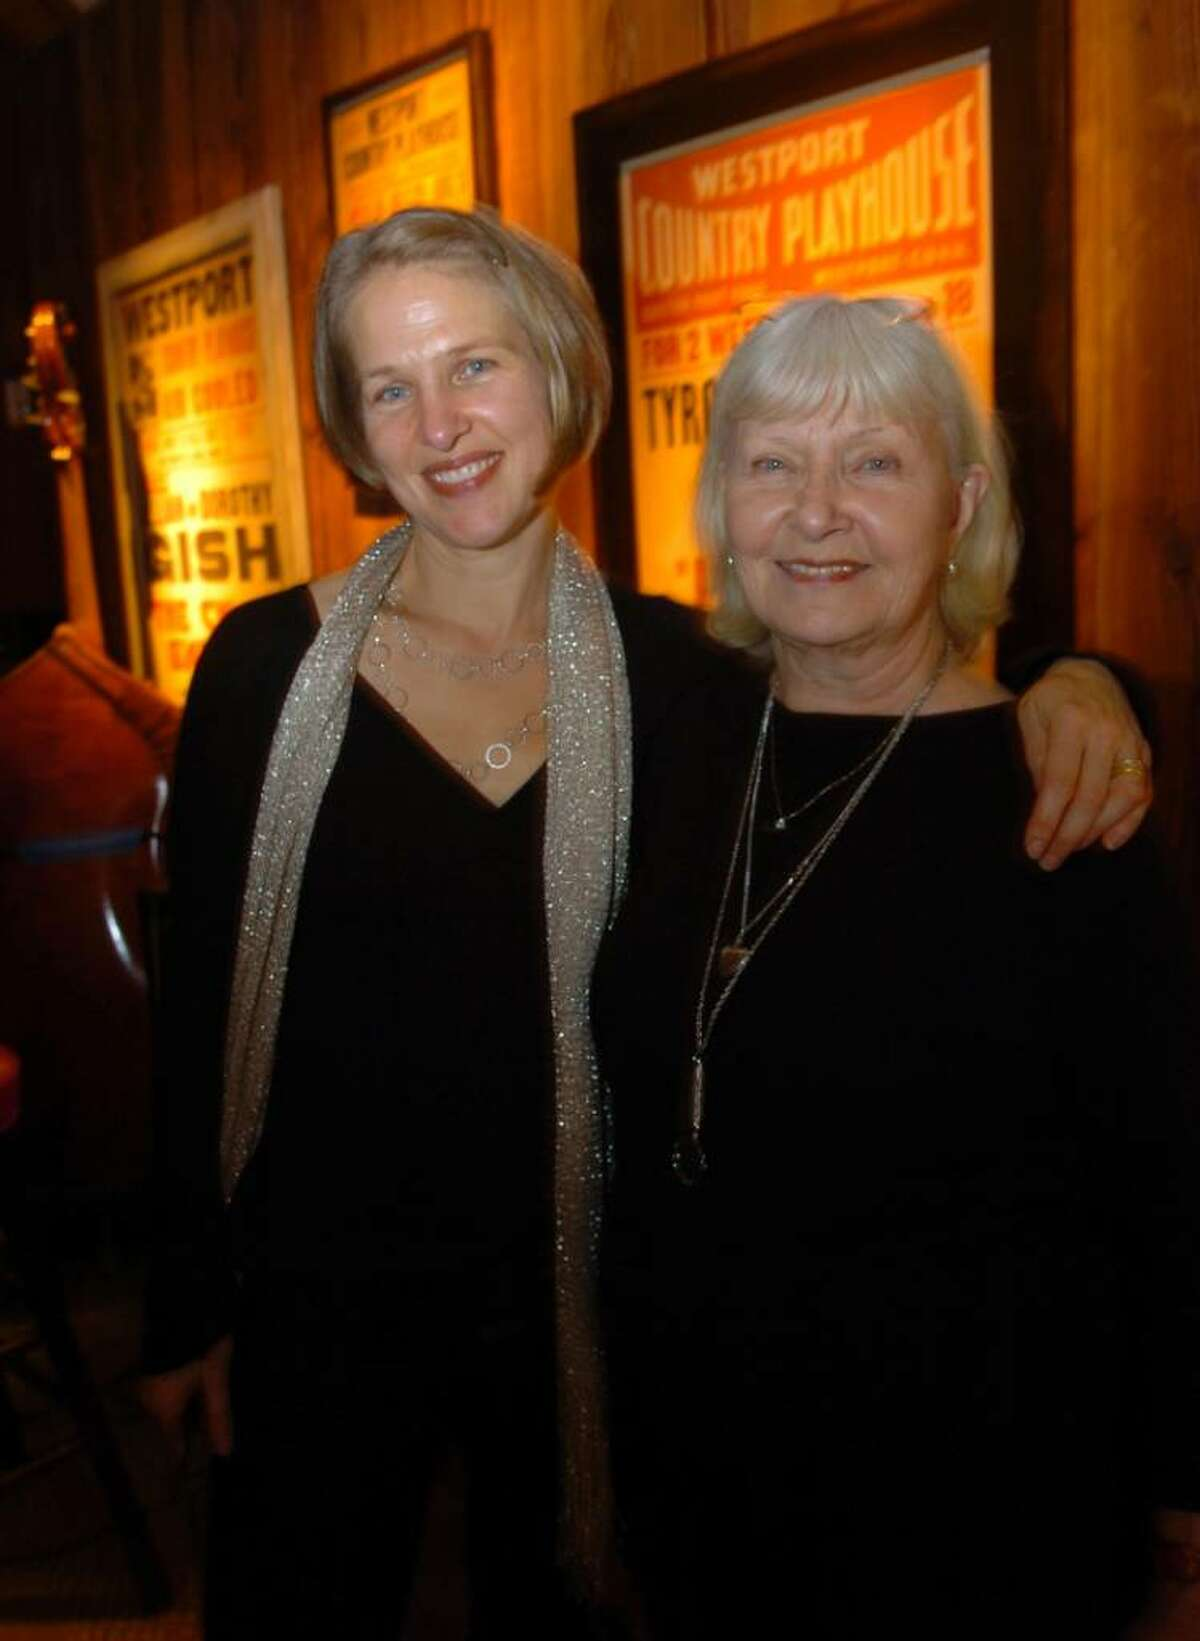 Lissy Newman with her mom, Joanne Woodward after her first set at The Dressing Room restaurant in Westport, Conn. on Friday Oct. 30, 2009. Lissy, the daughter of the late Paul Newman, has overcome her stagefright and become the resident singer at the restaurant.